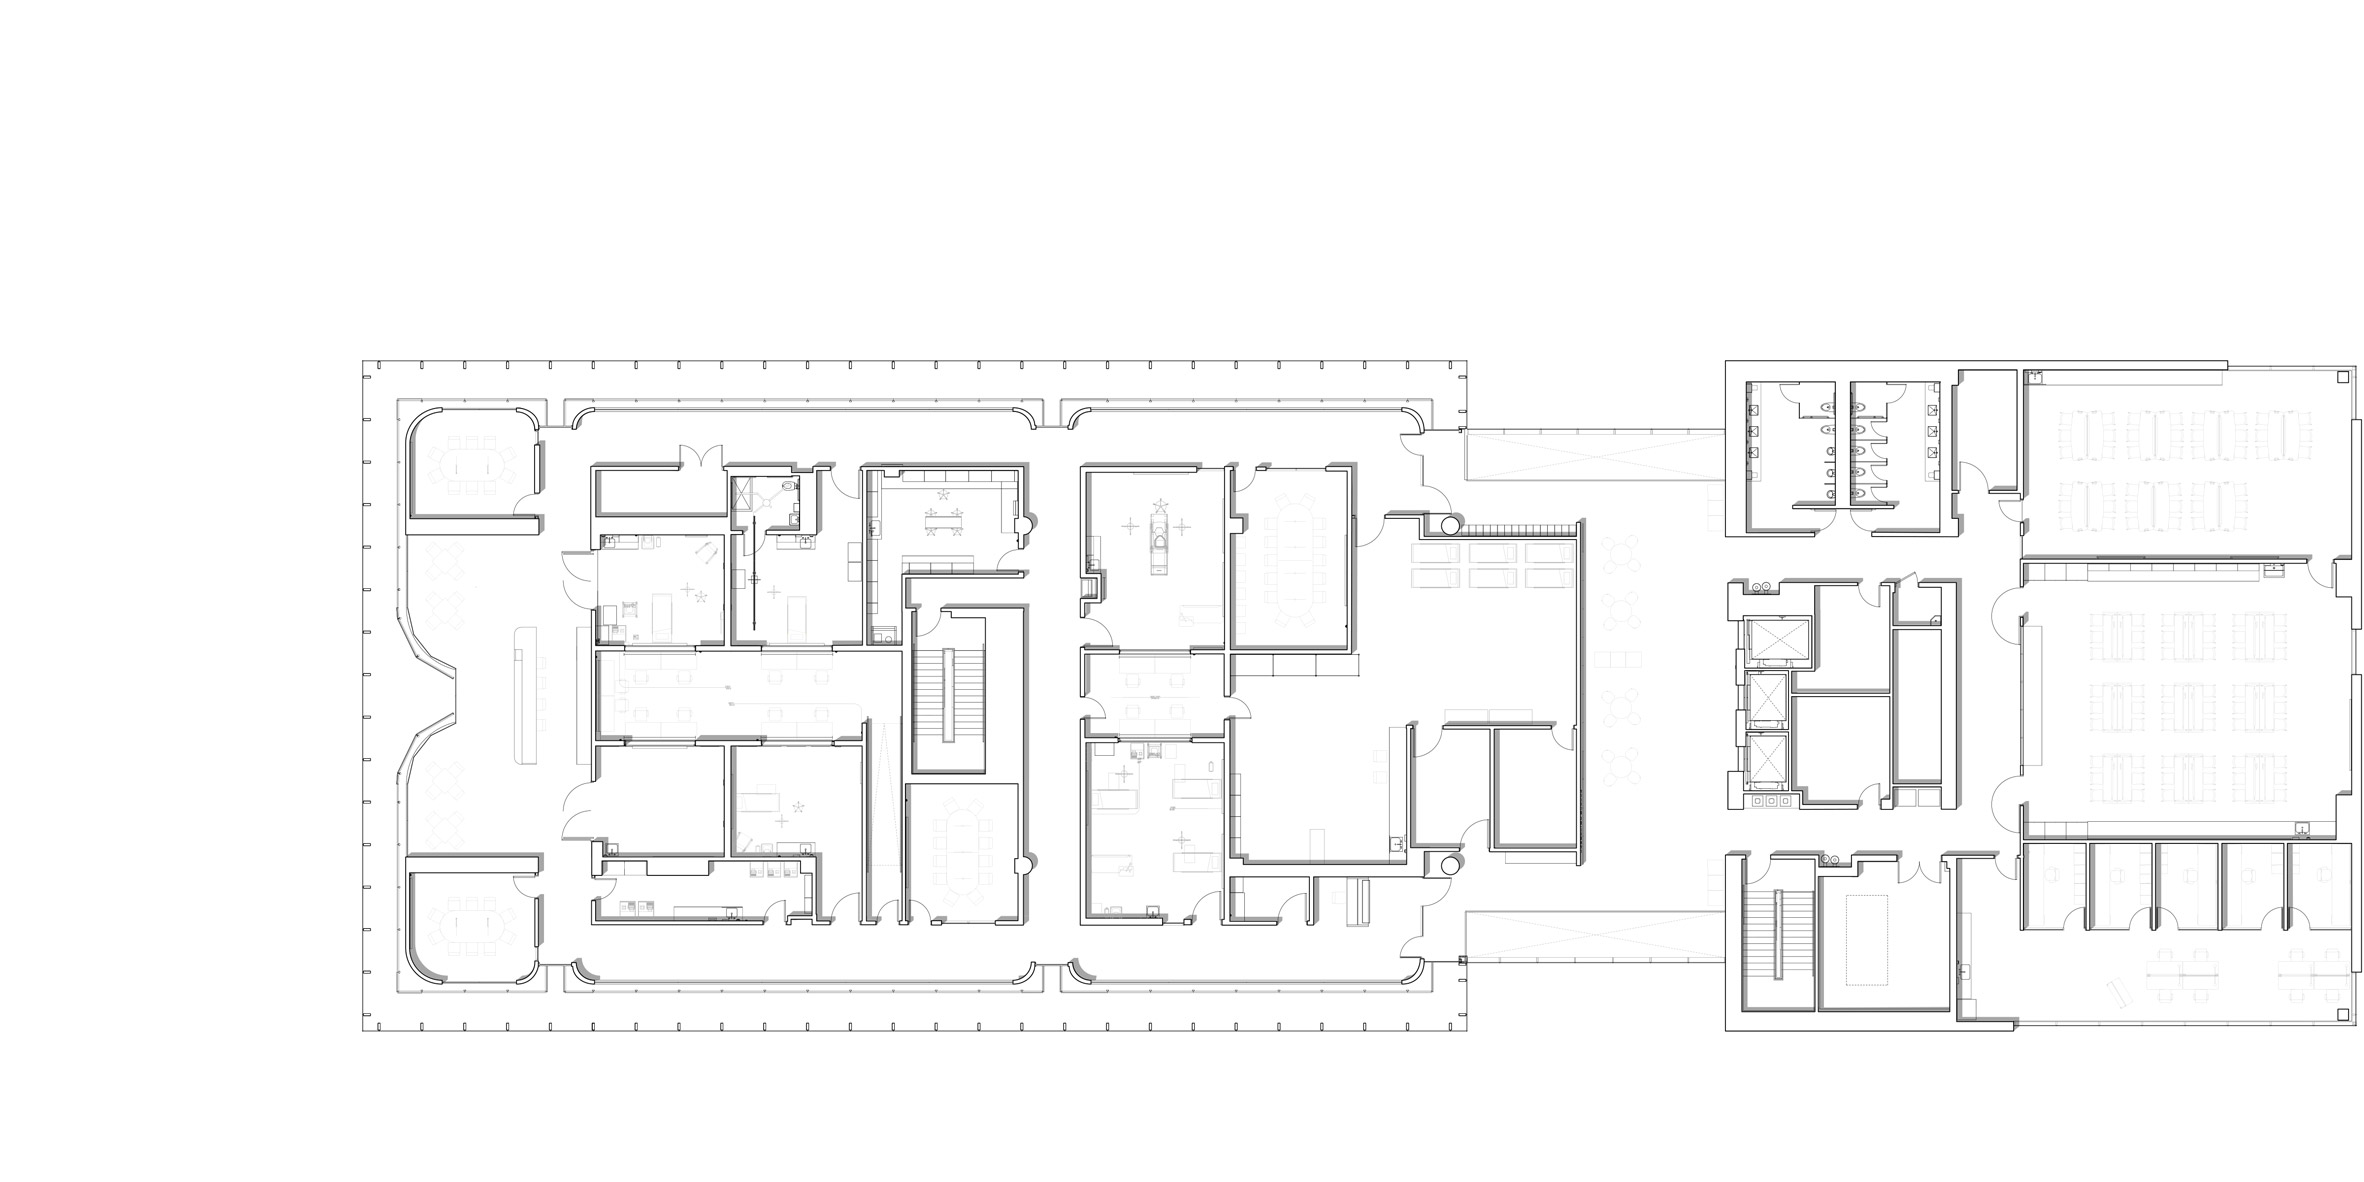 medical-center-university-of-kansas-co-architects-architecture-kansas-city-usa_dezeen_2364_fourth-level-floor-plan.jpg